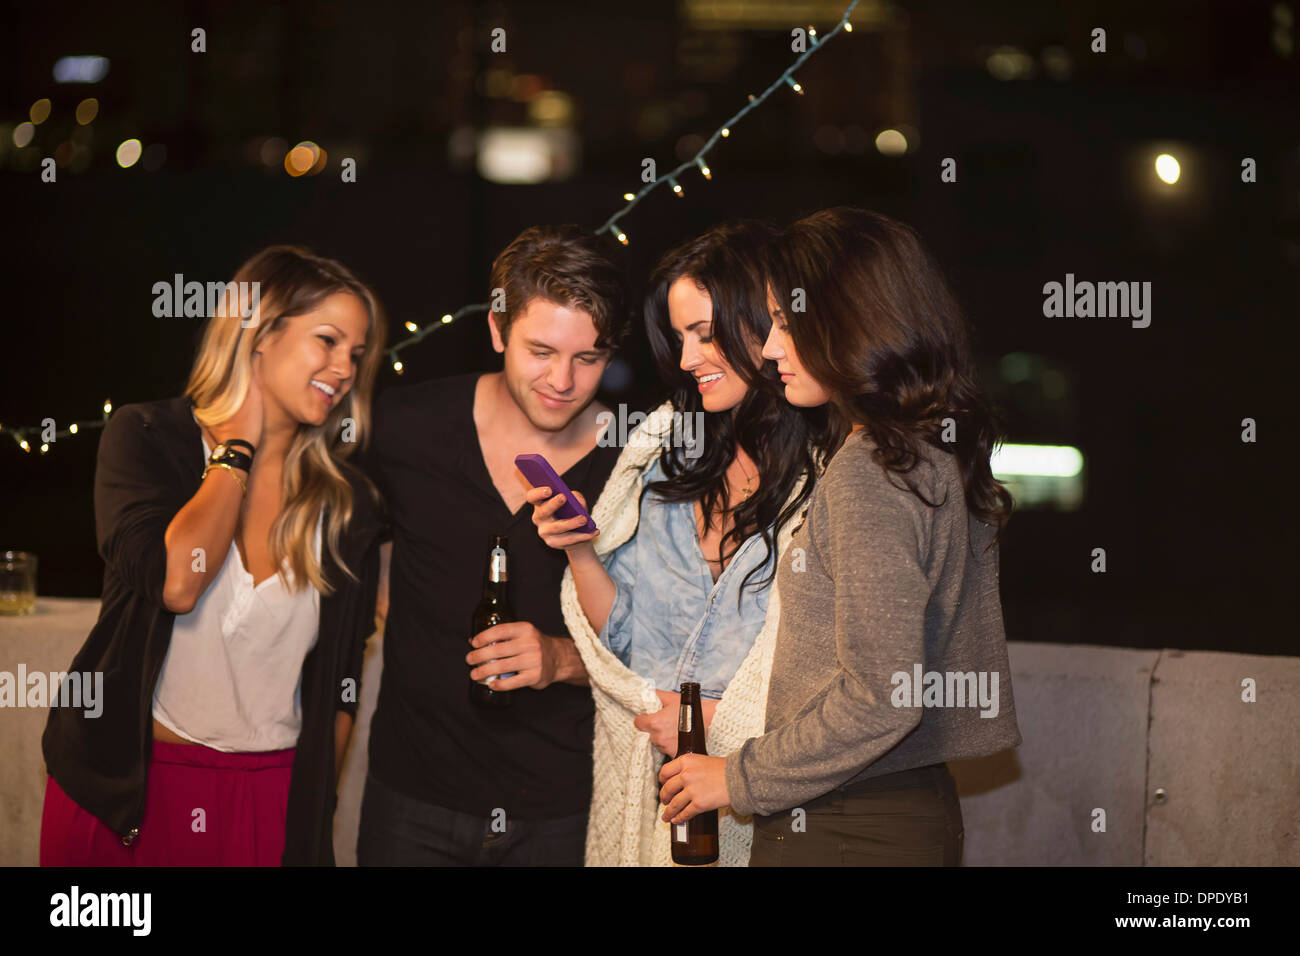 Young adult friends looking at mobile phone at rooftop party Photo Stock